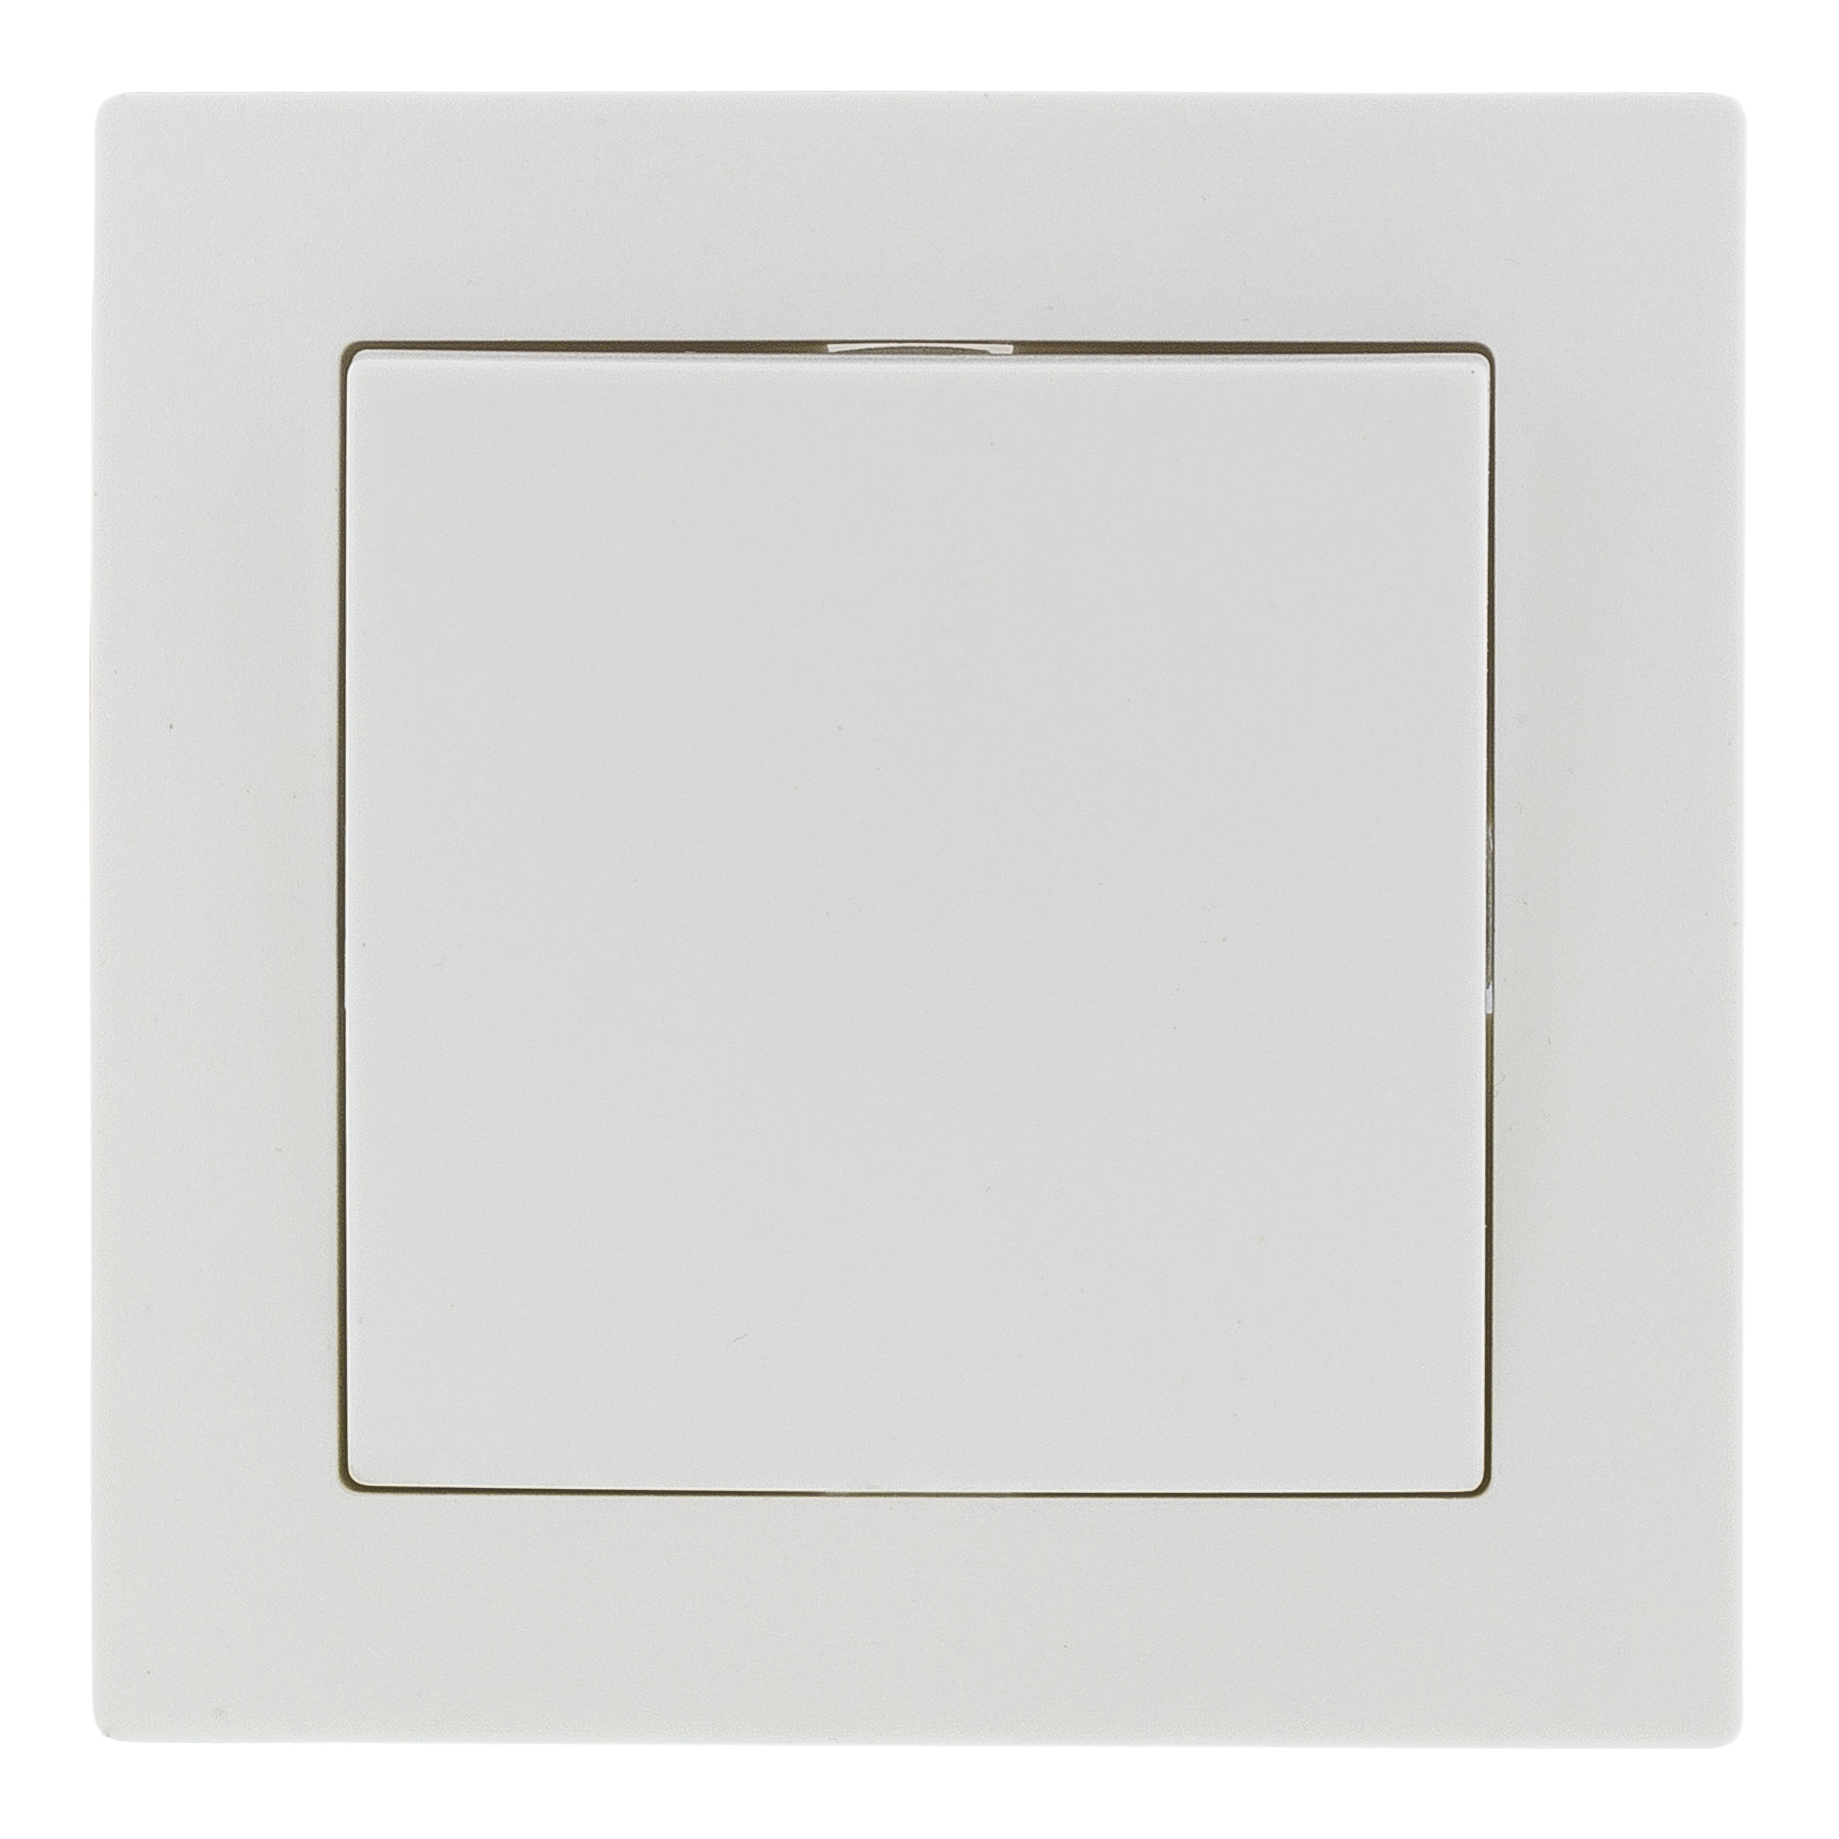 Epzi switch with one button, for flush mounting, 1 pole, white H1-C110M (Kan sendes i brev)